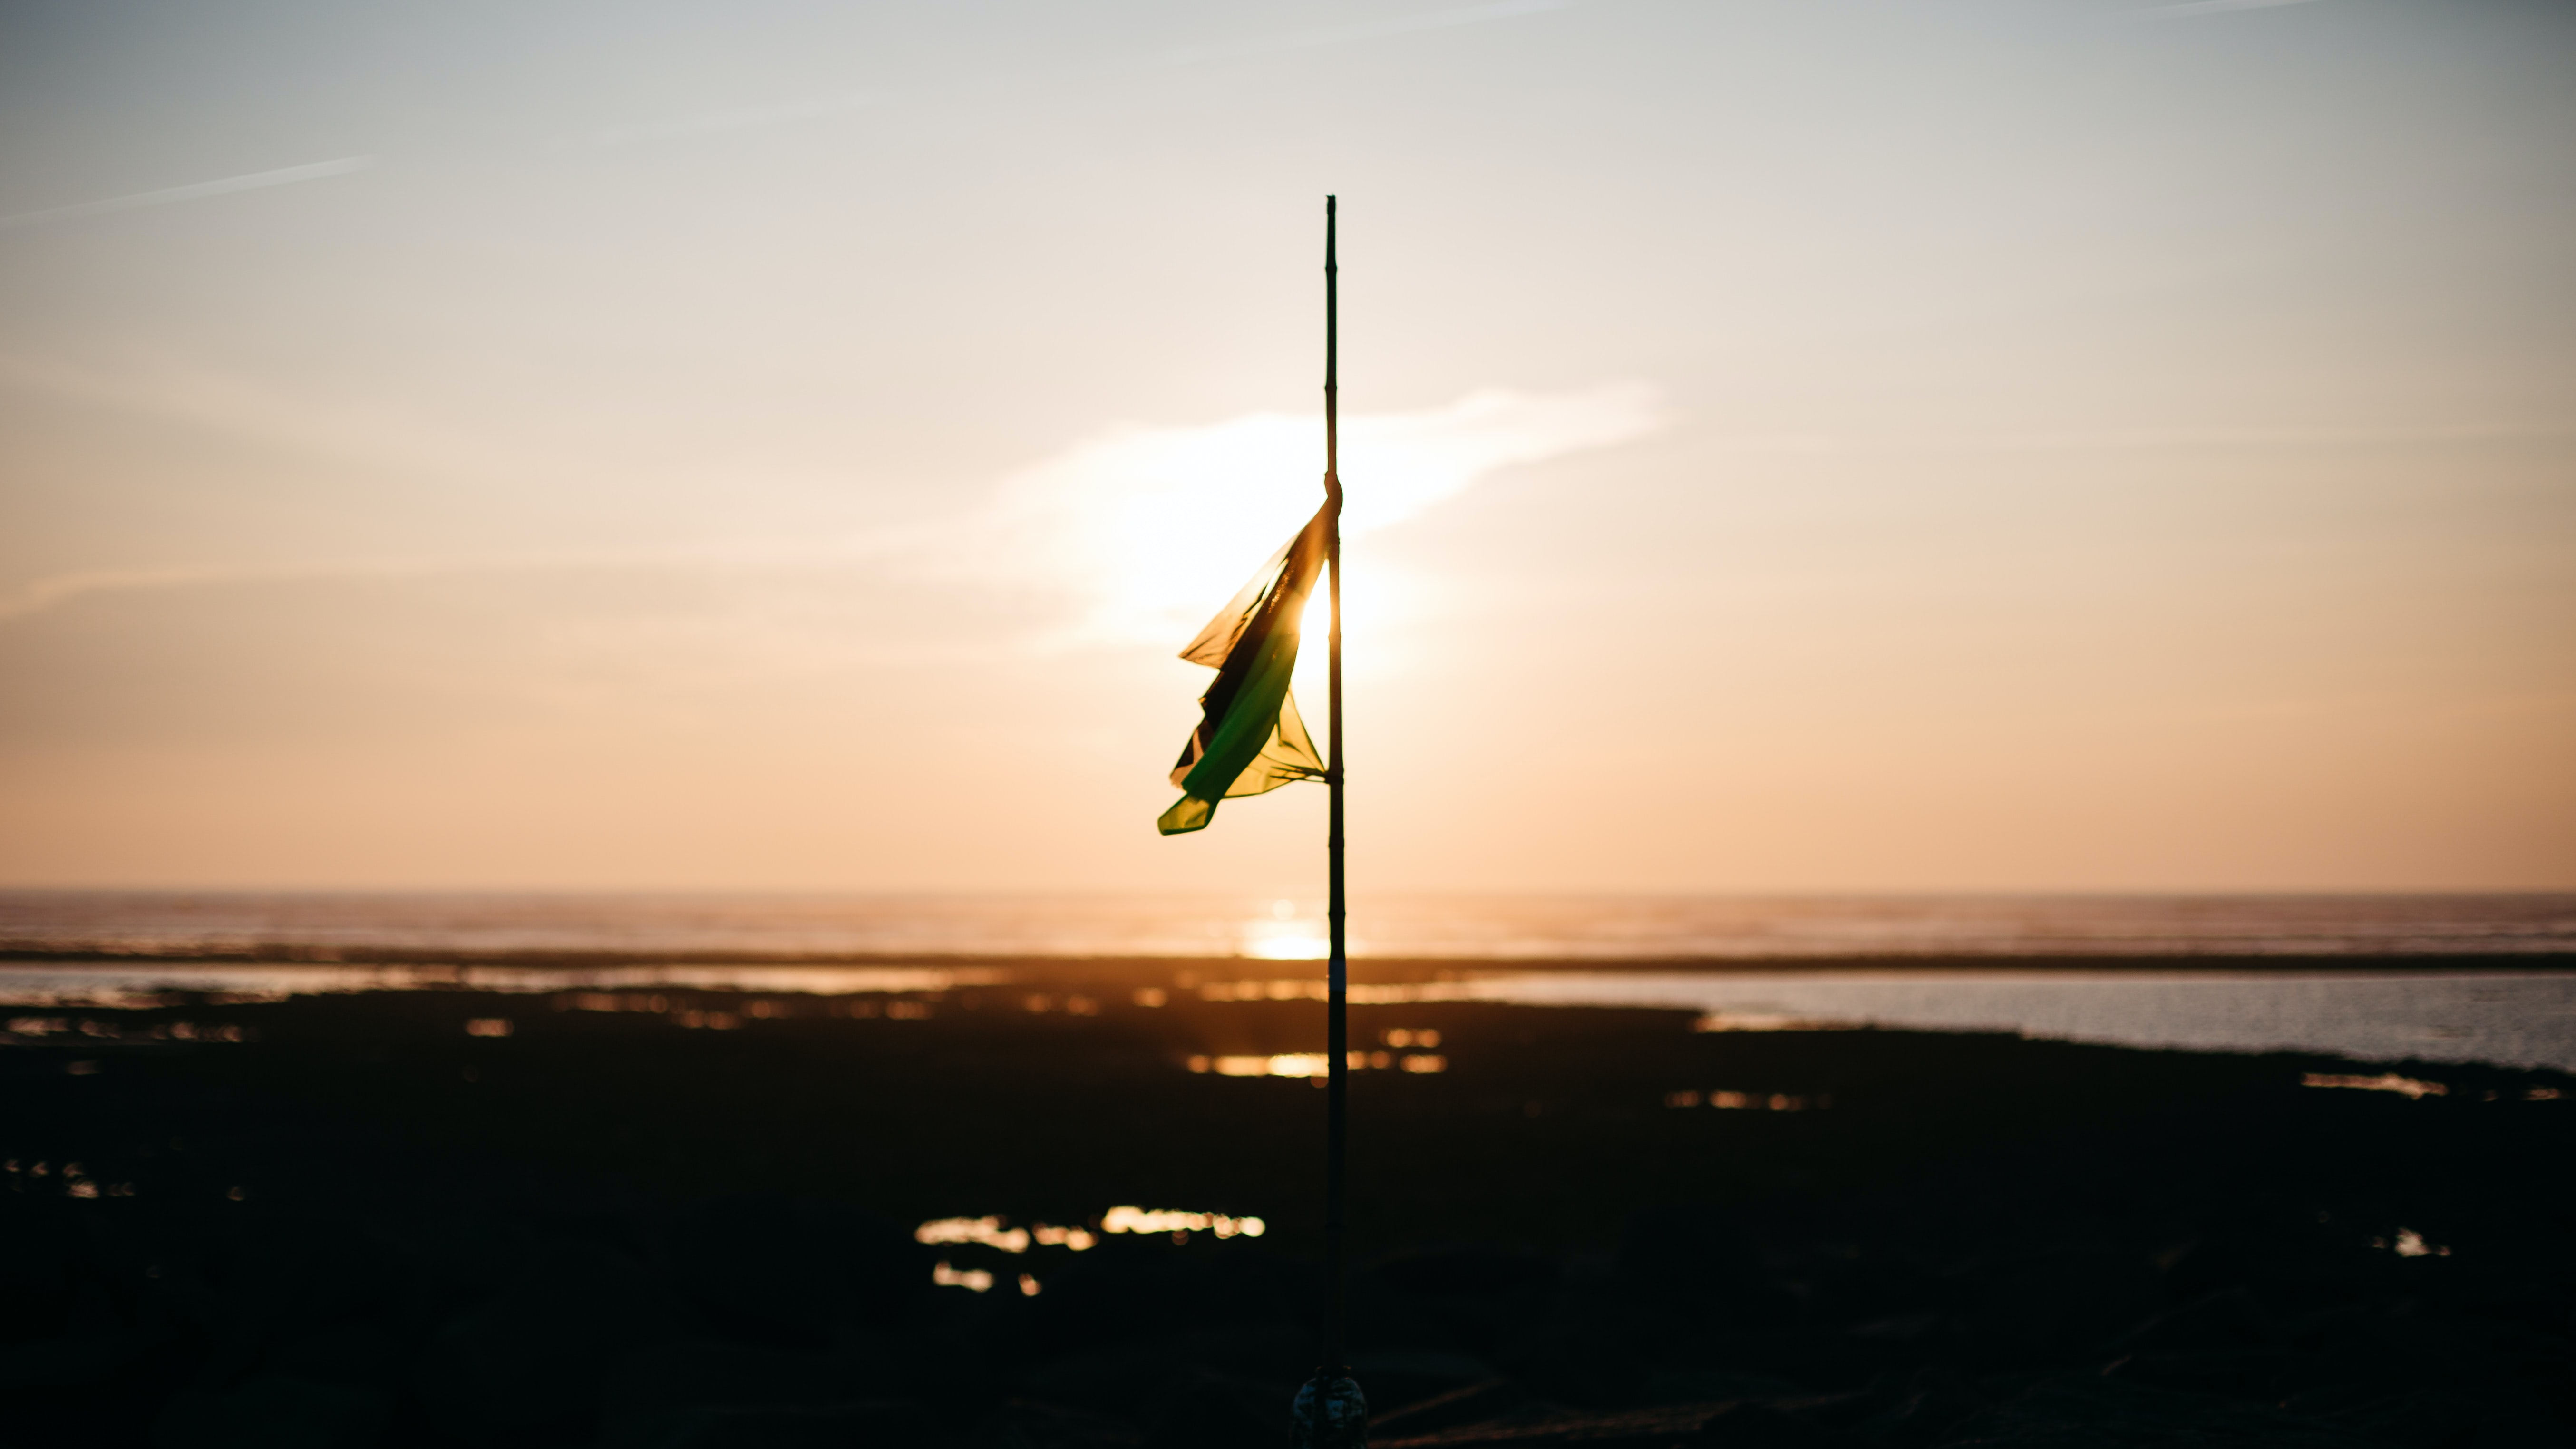 flag half mast near body of water during golden hour